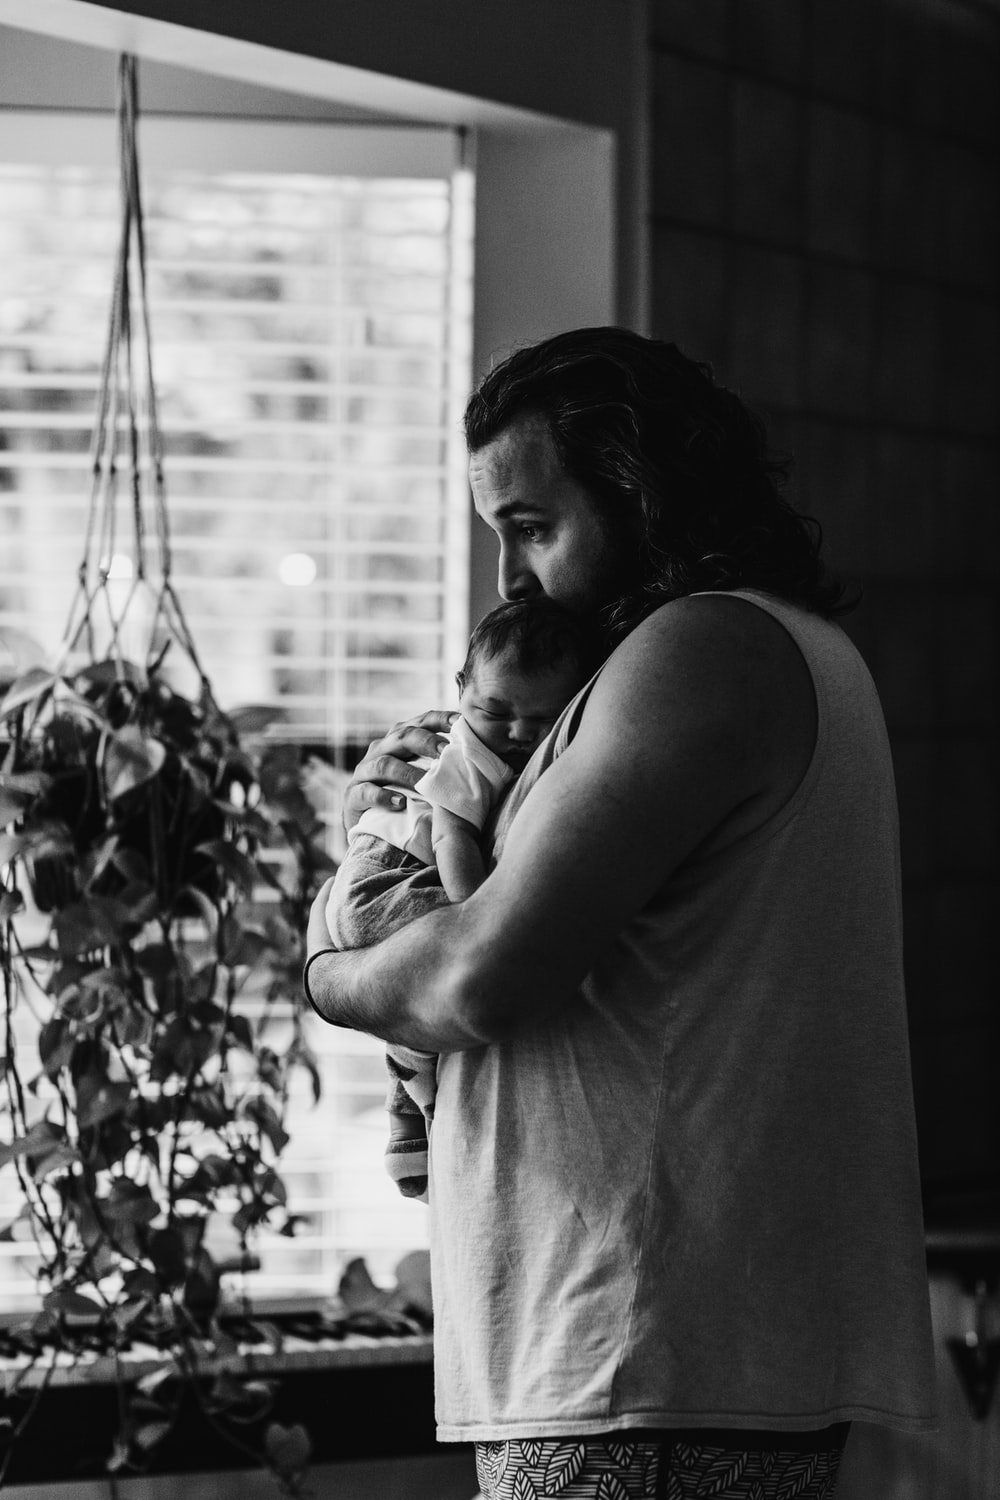 grayscale photography of man wearing tank top carrying newborn baby while standing near window